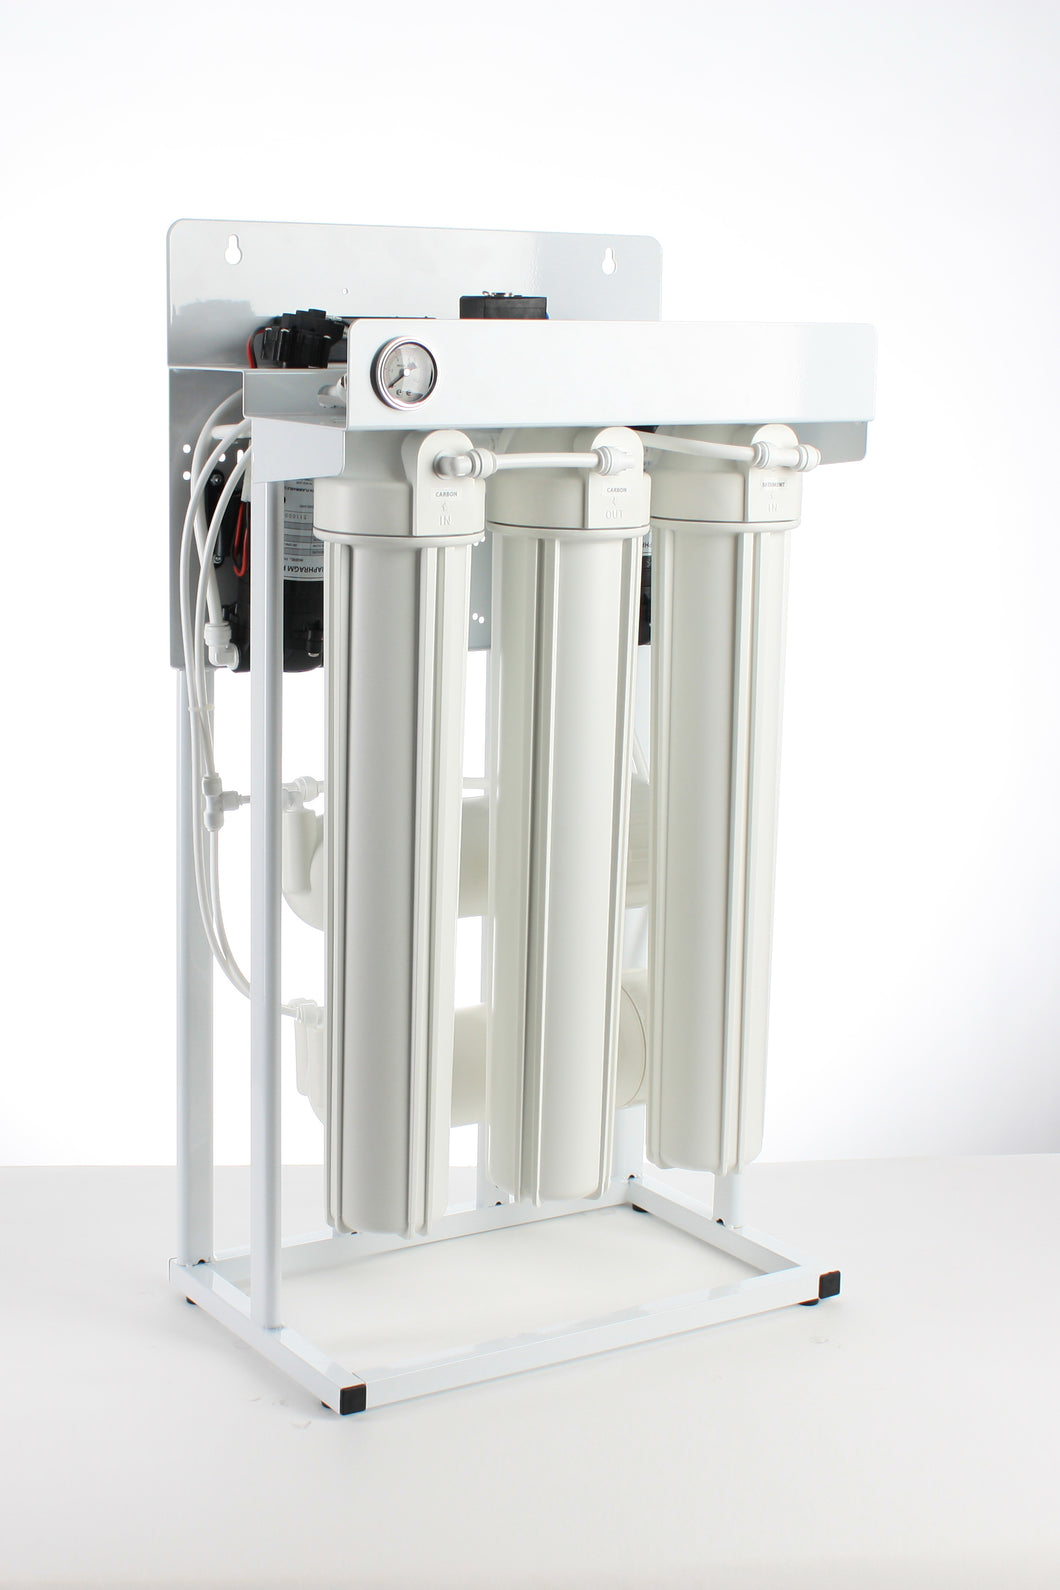 600 GPD Reverse Osmosis Drinking Water System - Light Commercial